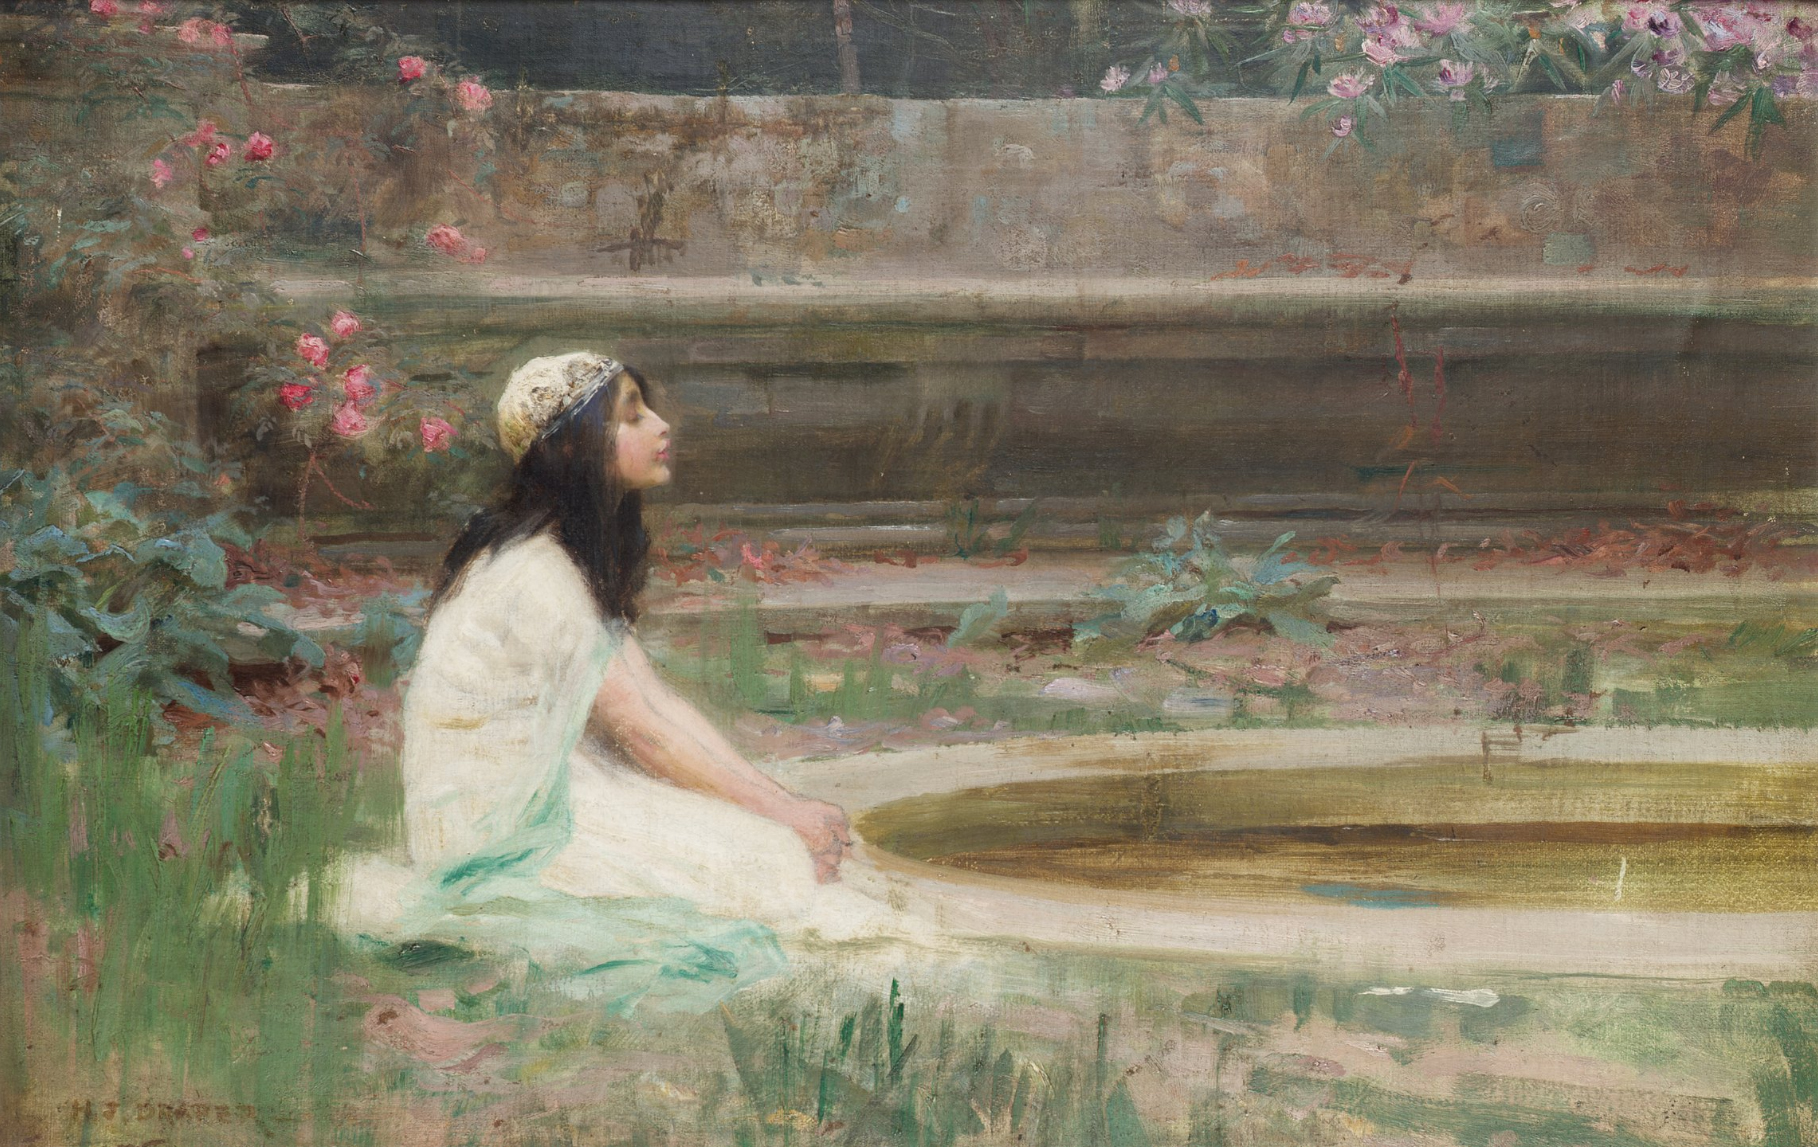 Herbert_James_Draper,_A_Young_Girl_by_a_Pool